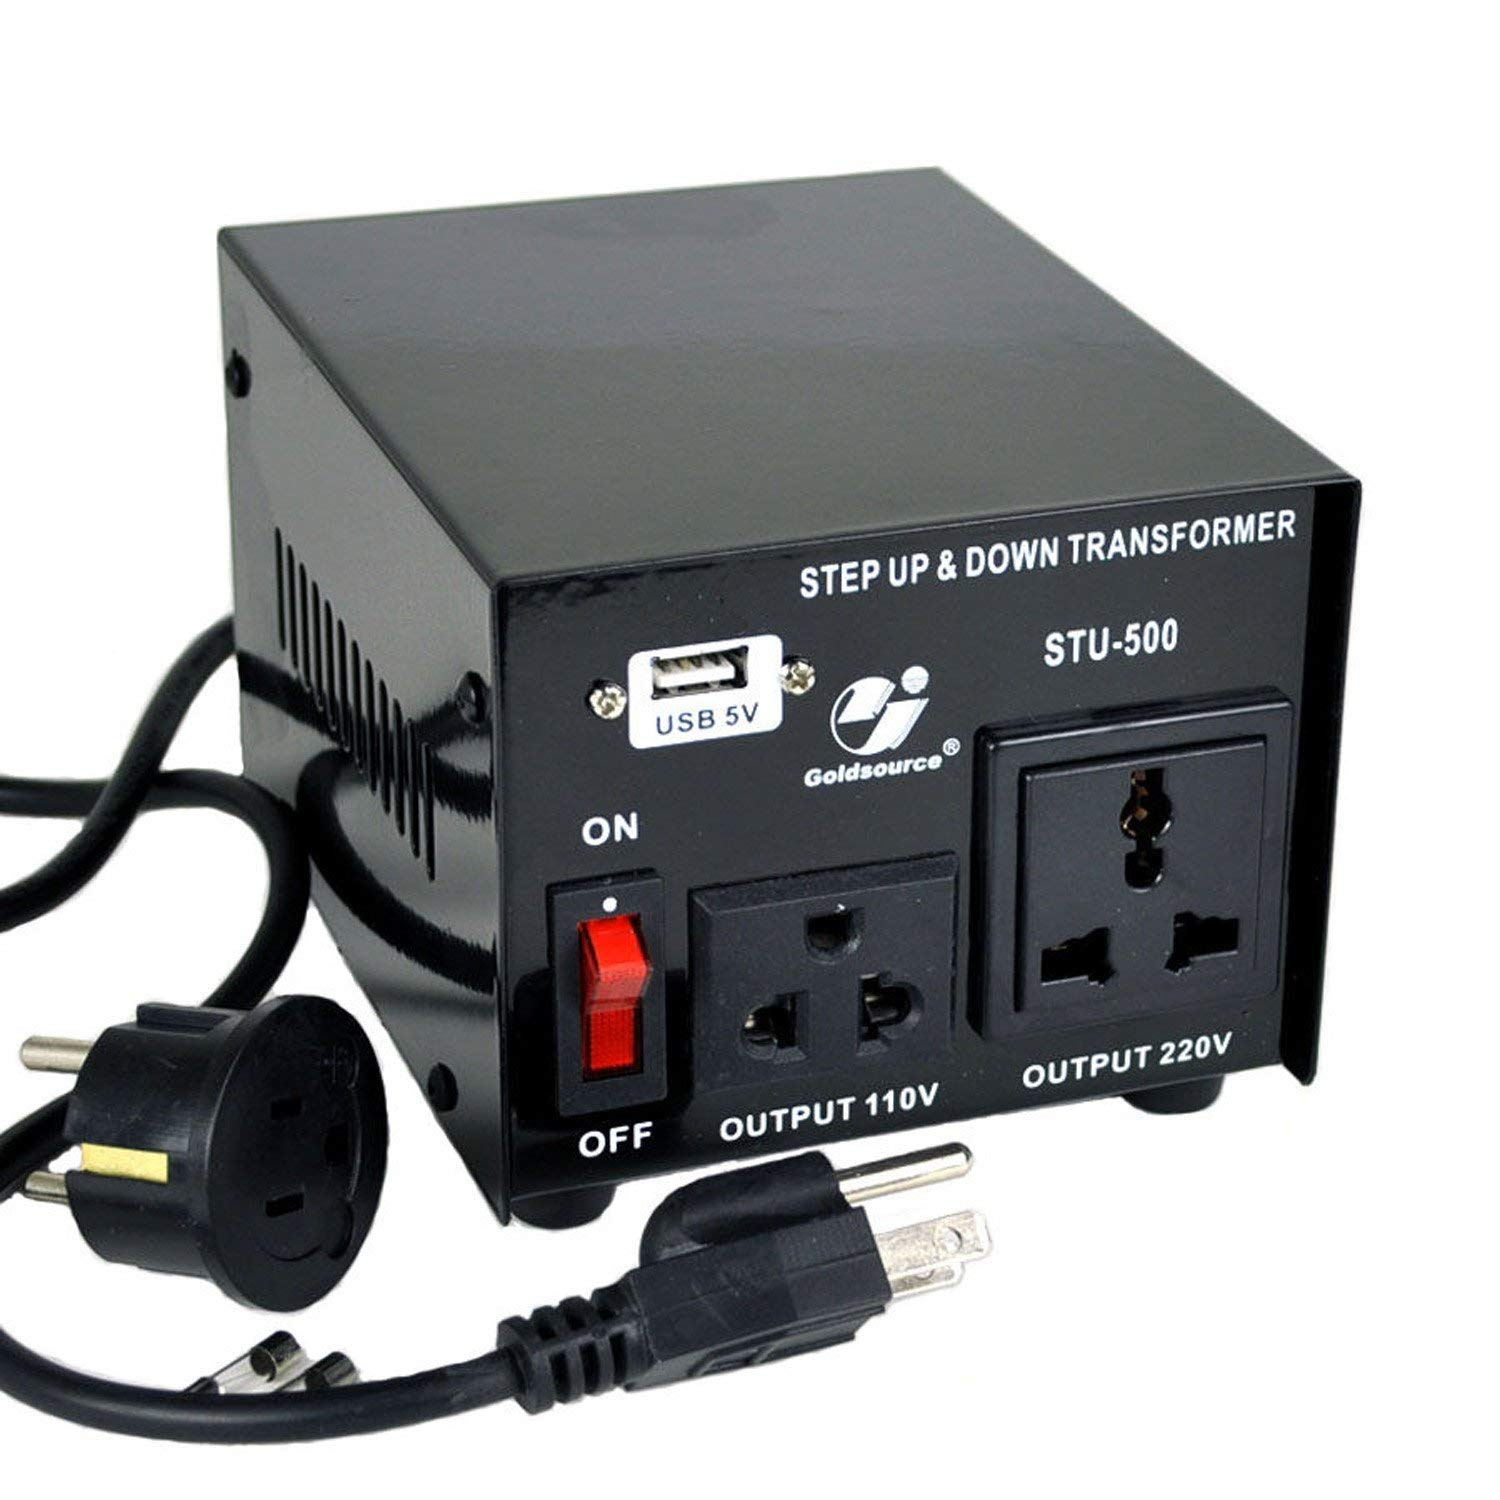 Goldsource STU-500W Voltage Transformer Converter: AC 110V/220V Step-Up/Down Power Converter with 5V USB Output, 500 Watt